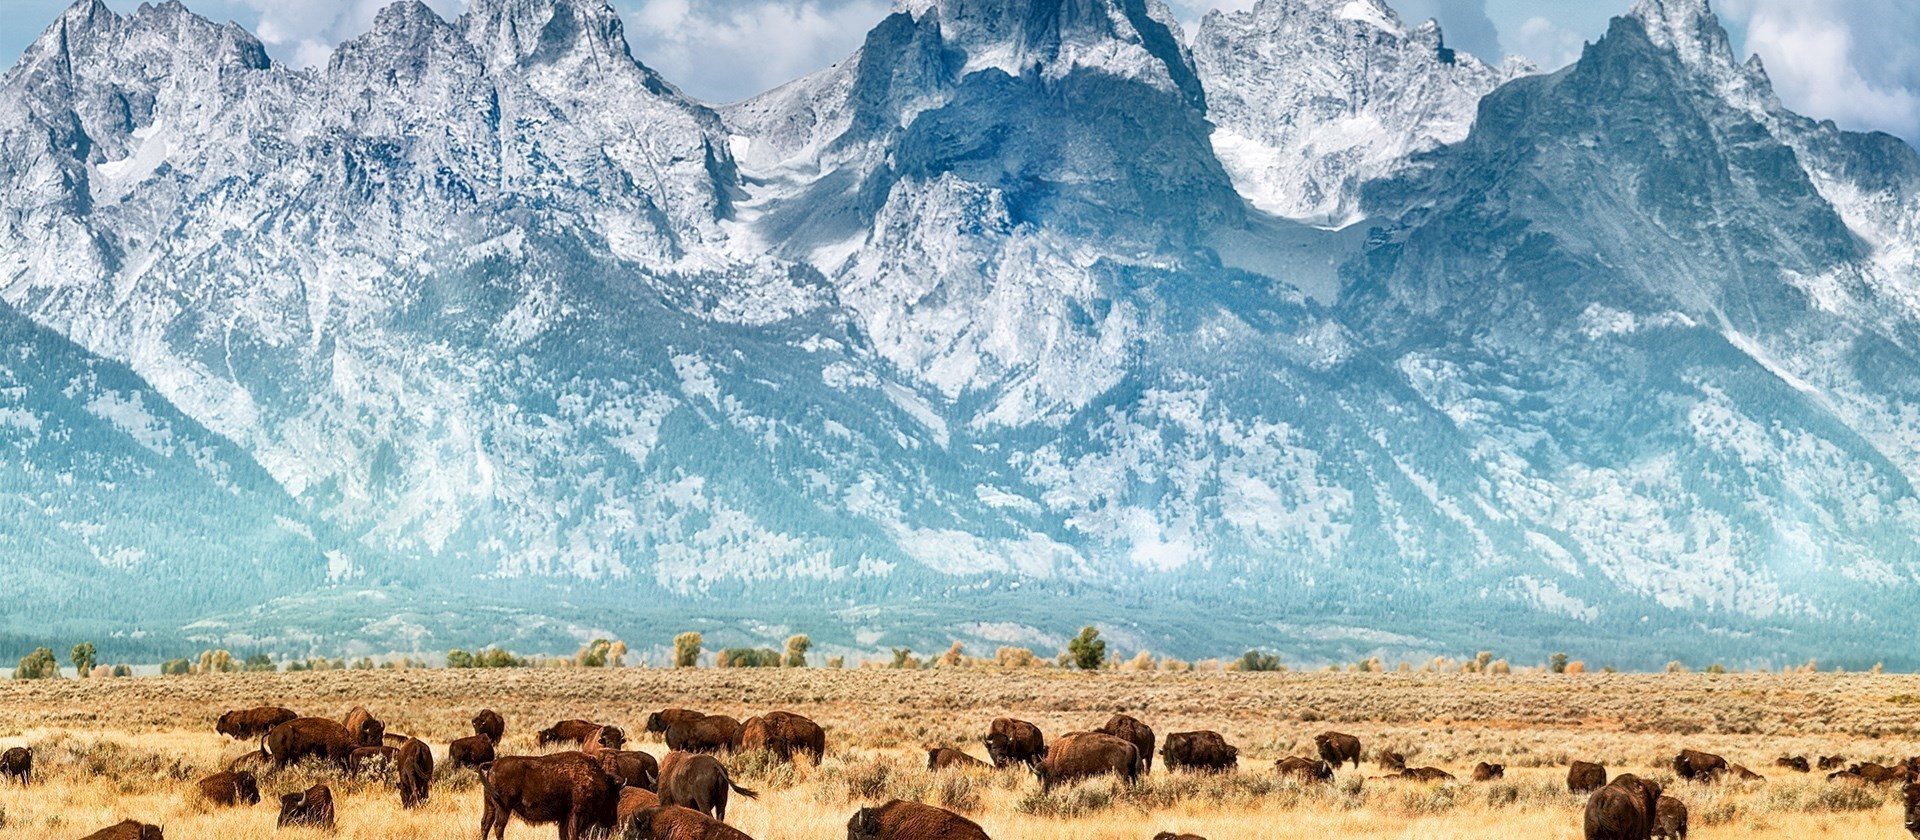 Mountains and Buffalo - Yellowstone National Park